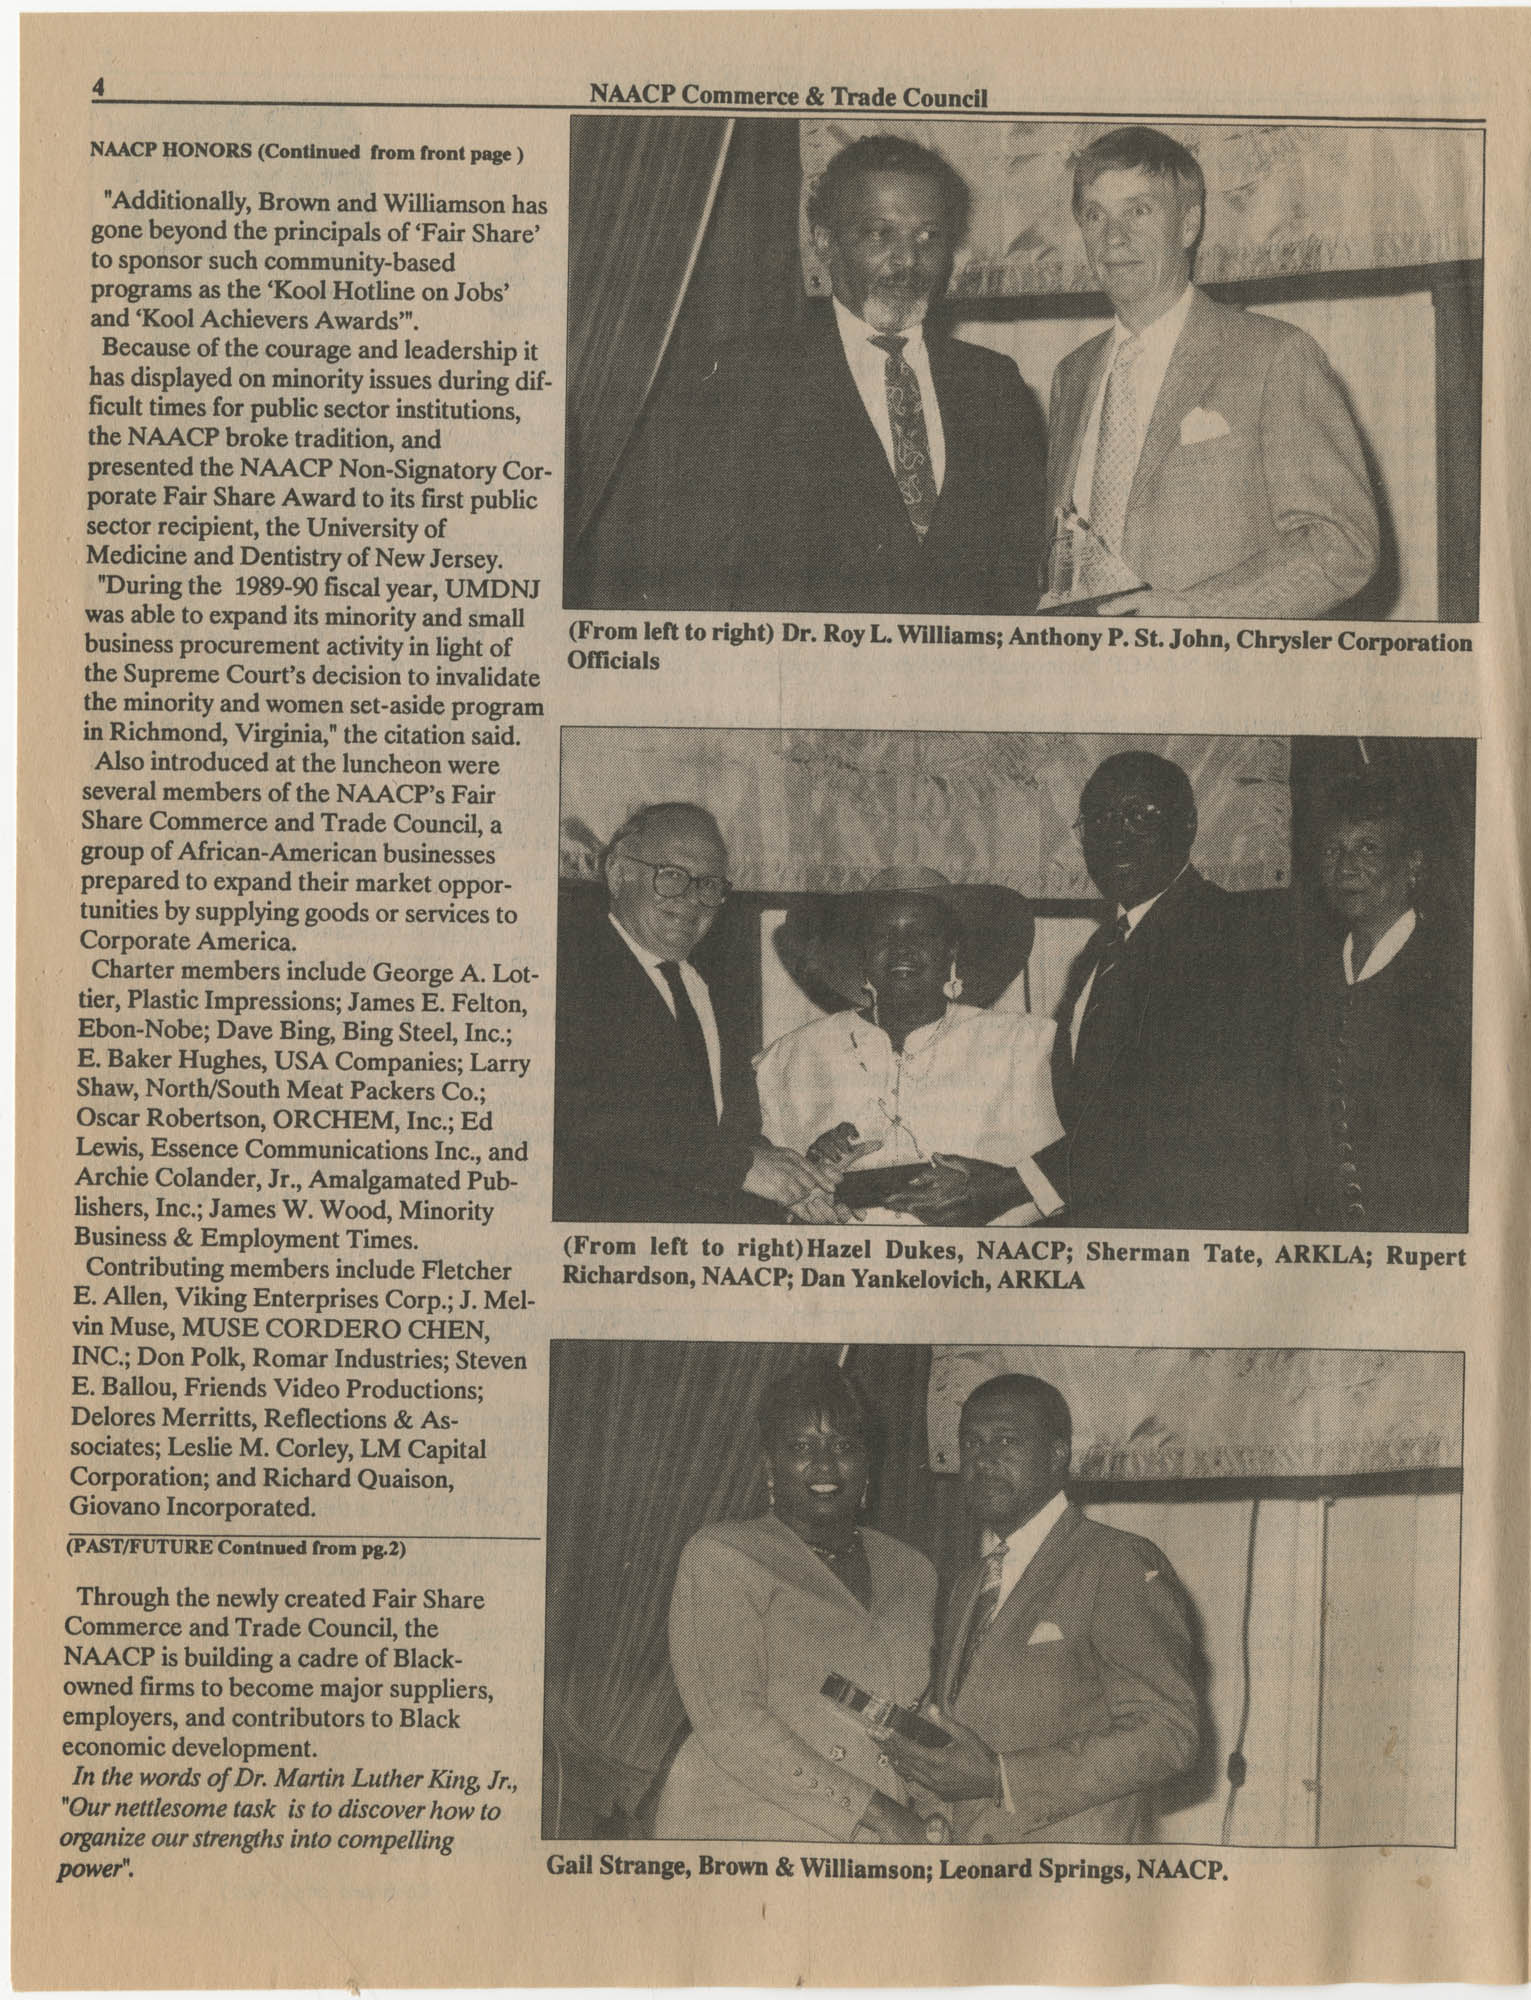 NAACP Commerce and Trade Council, July/September 1991, Vol. 1, Issue 1, Page 4